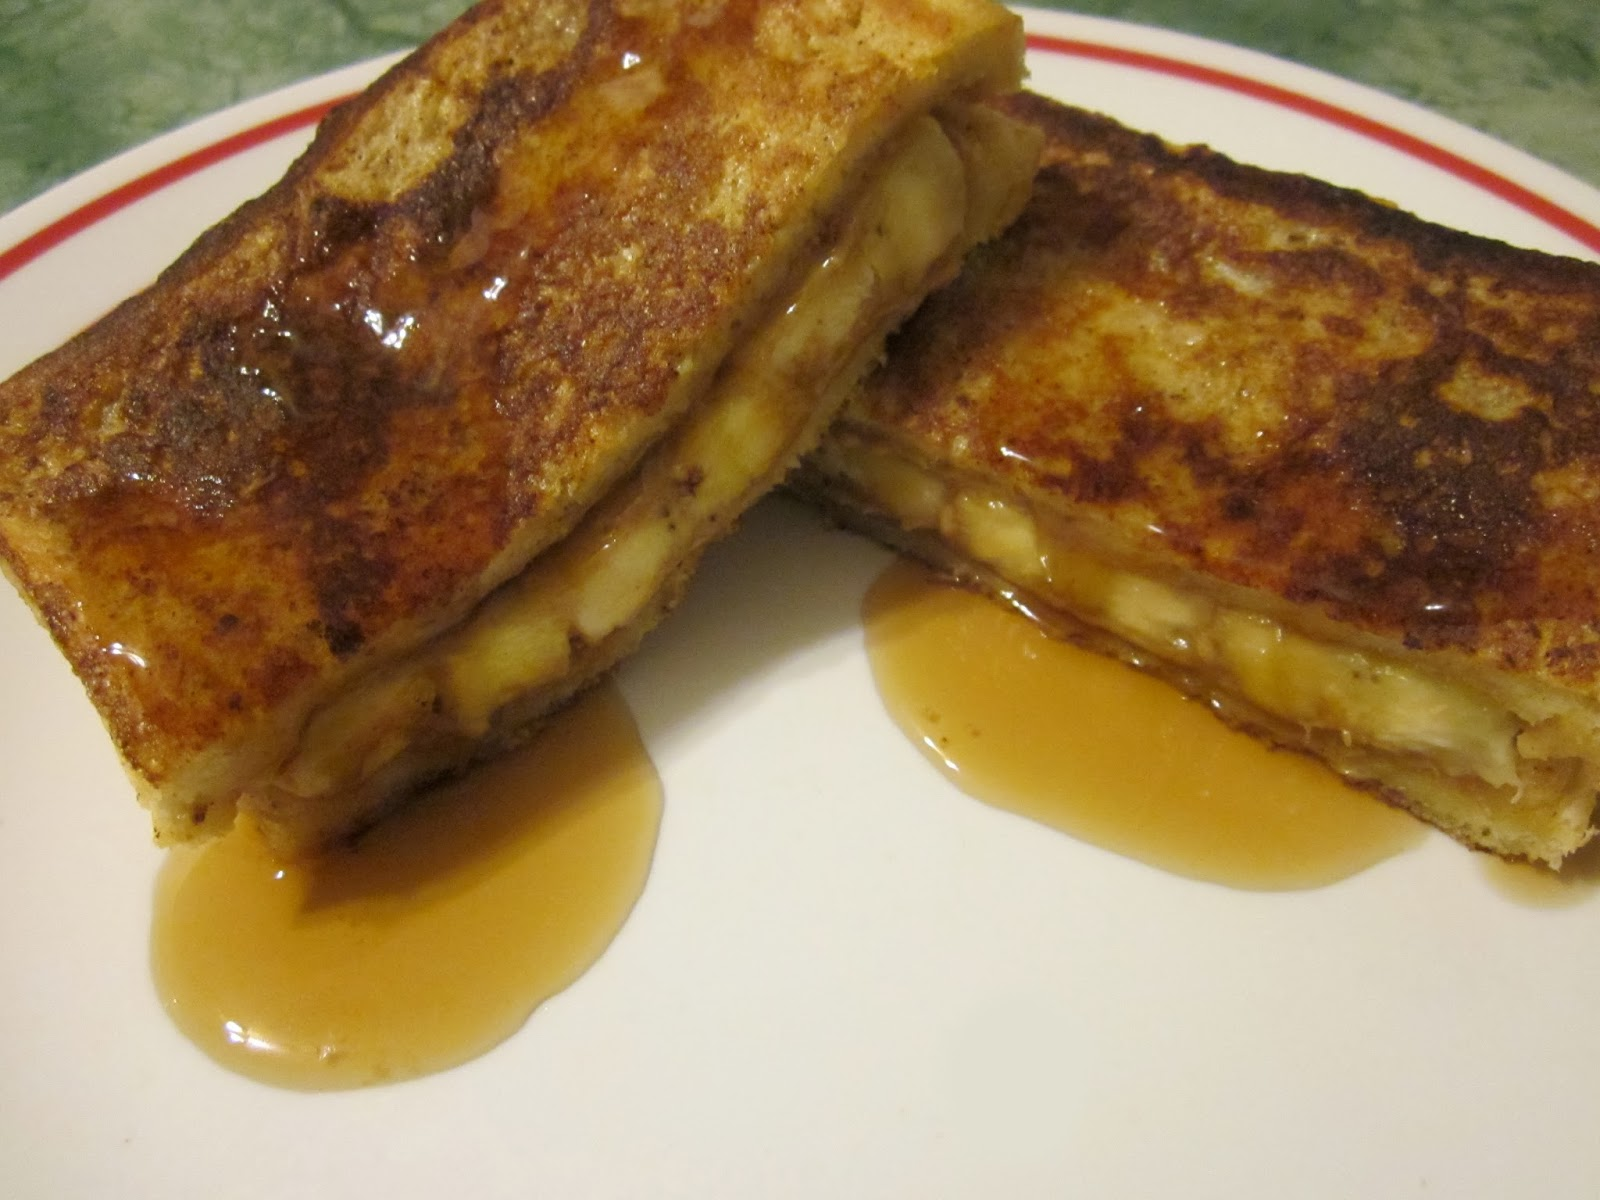 Redi-Set-Go Recipes: Peanut Butter Banana Stuffed French Toast